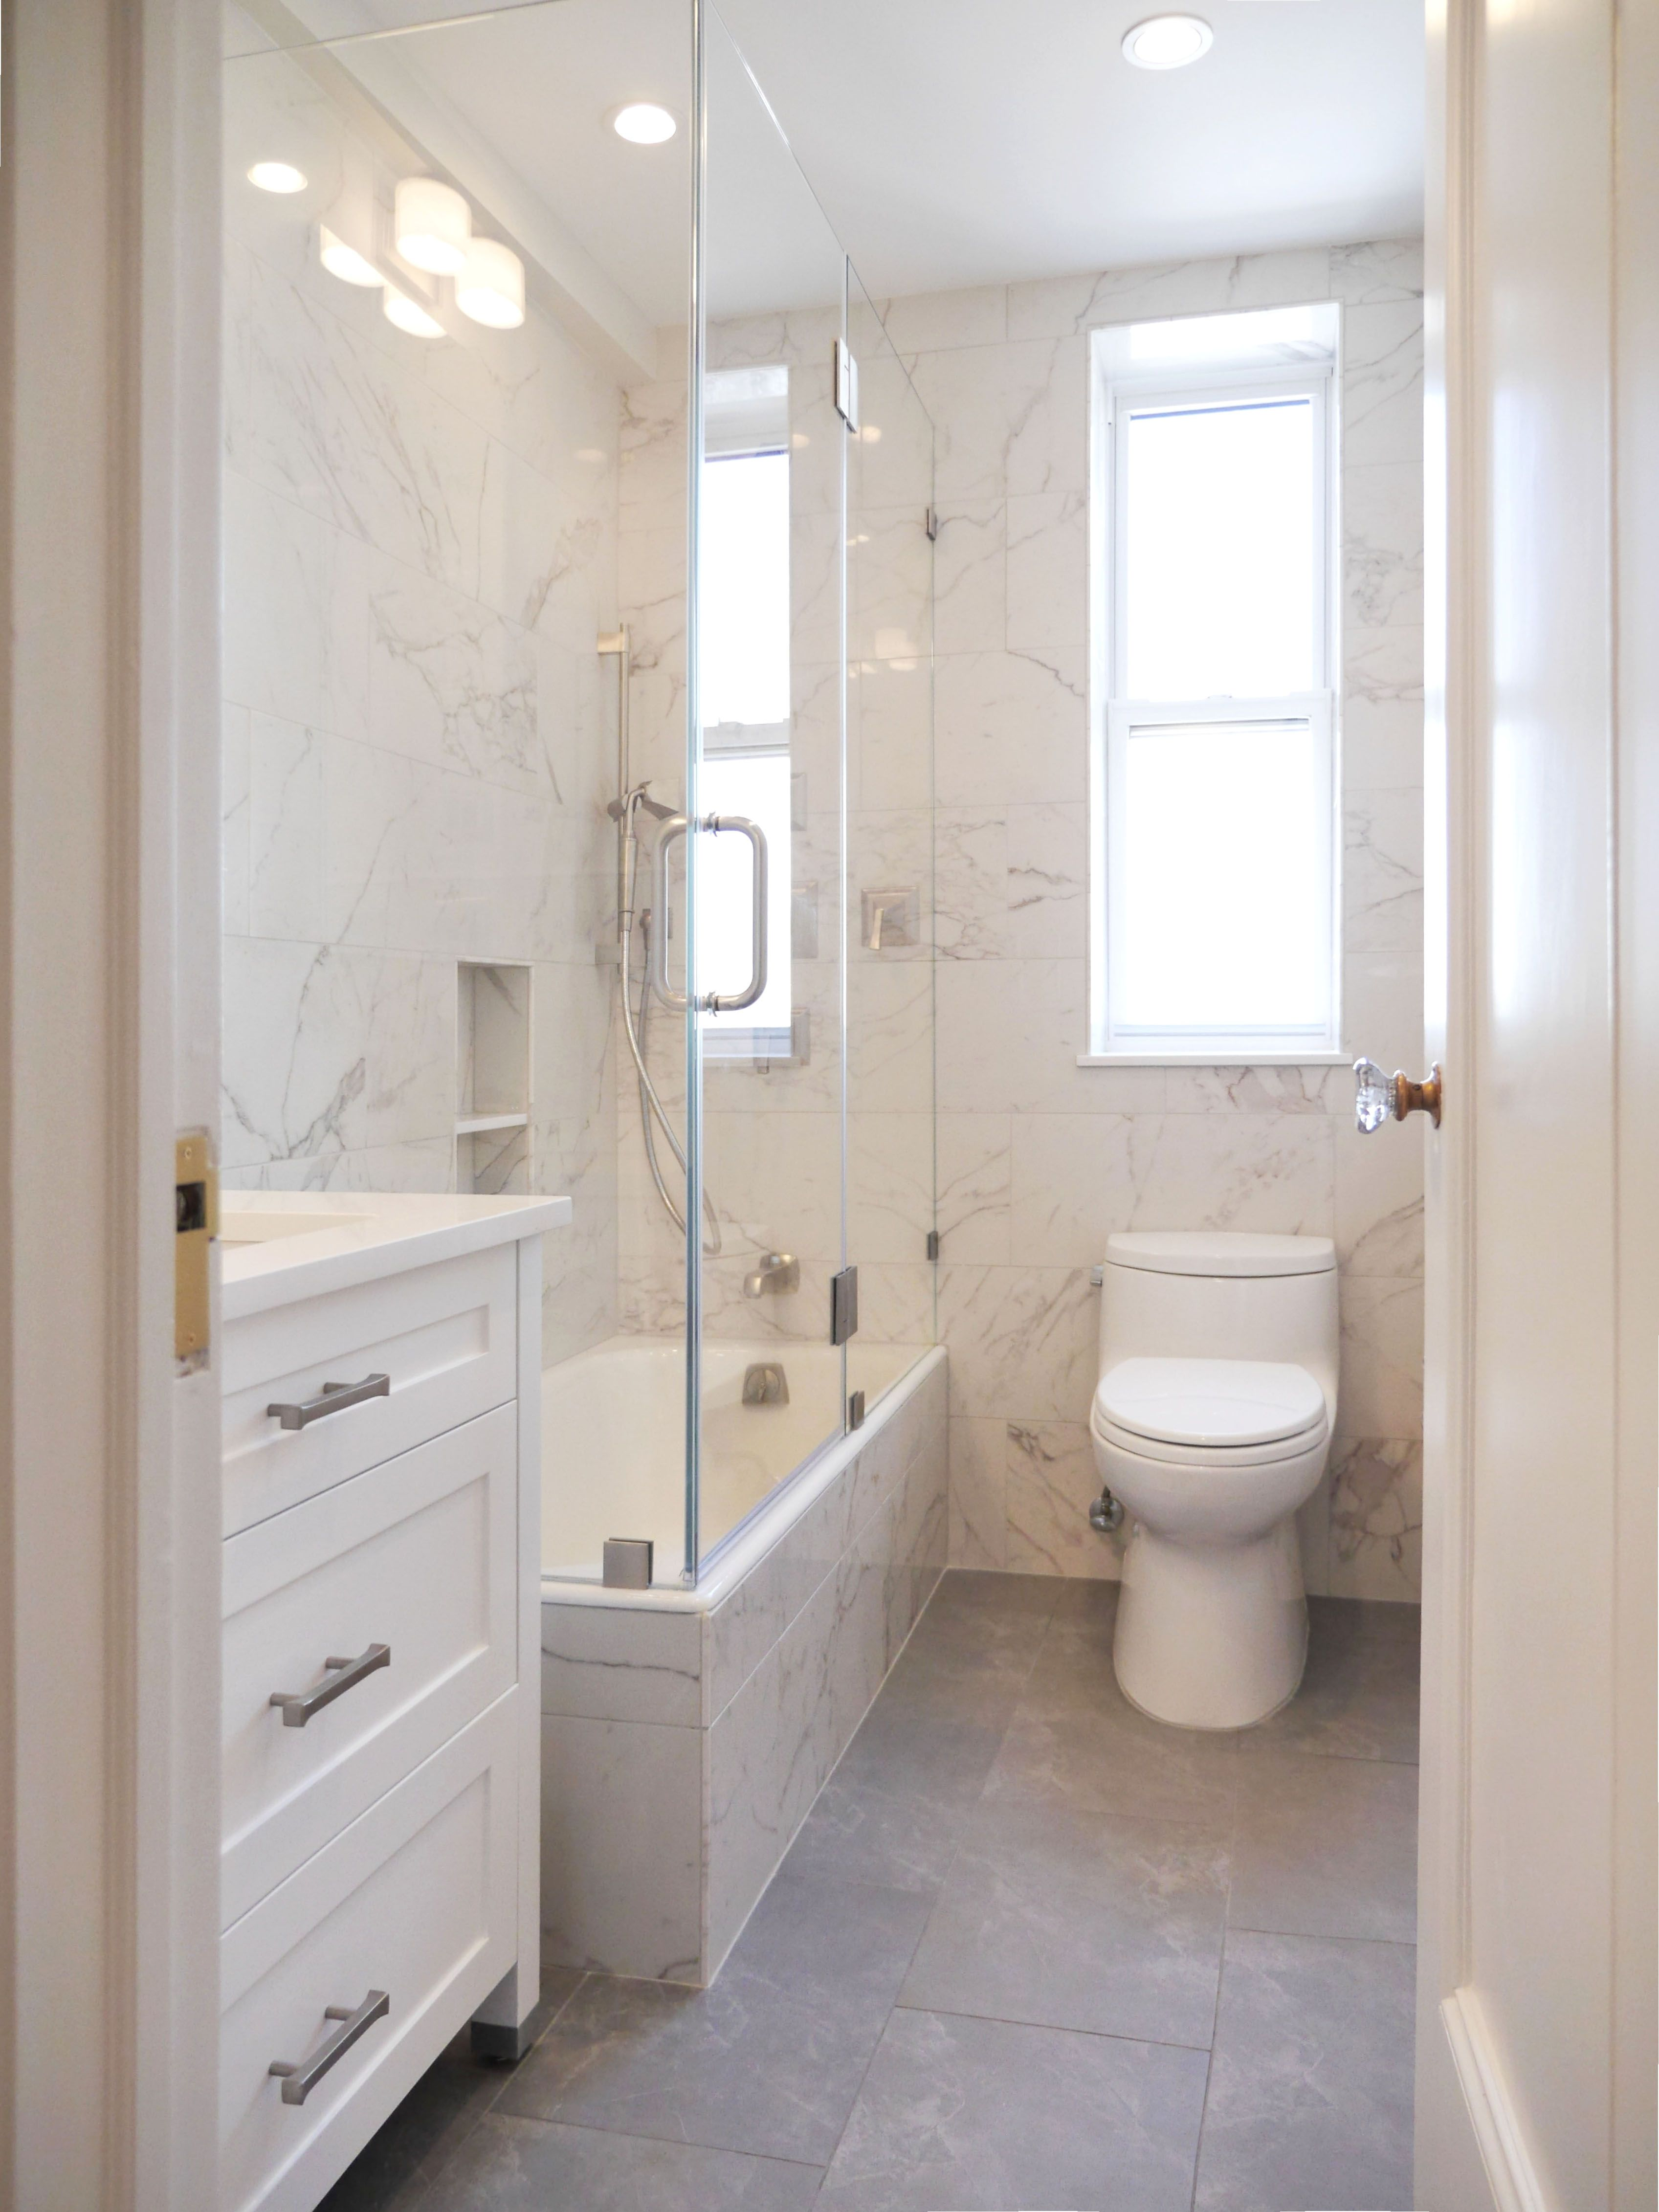 A Nyc Bathroom Remodel Restores Prewar Beauty Budget Bathroom Remodel Bathroom Remodel Cost Small Bathroom